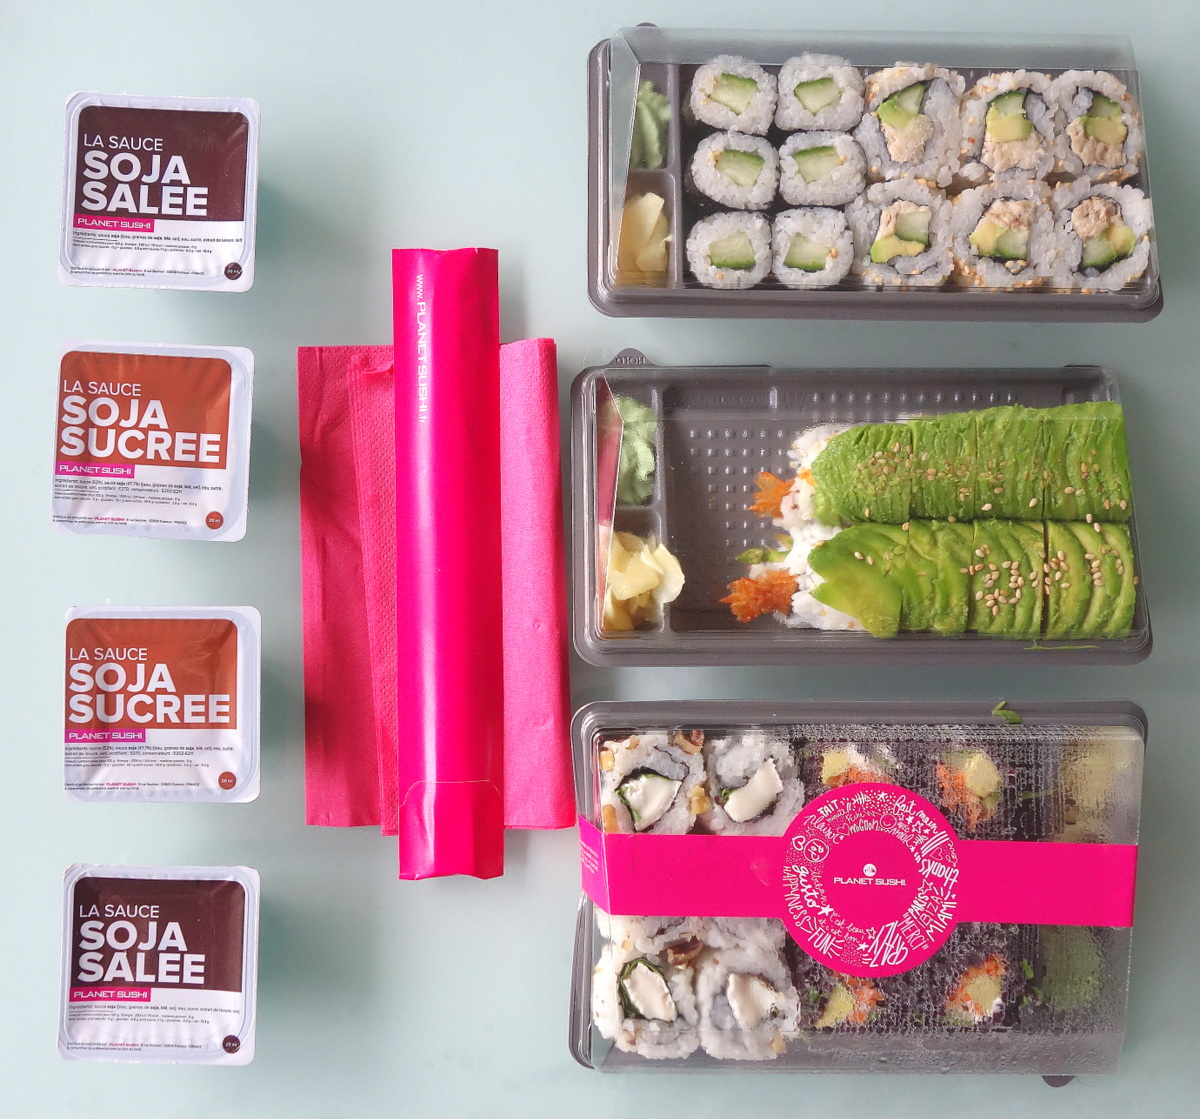 Planet sushi Montrouge - Allo resto by Just eat - Blog food Paris